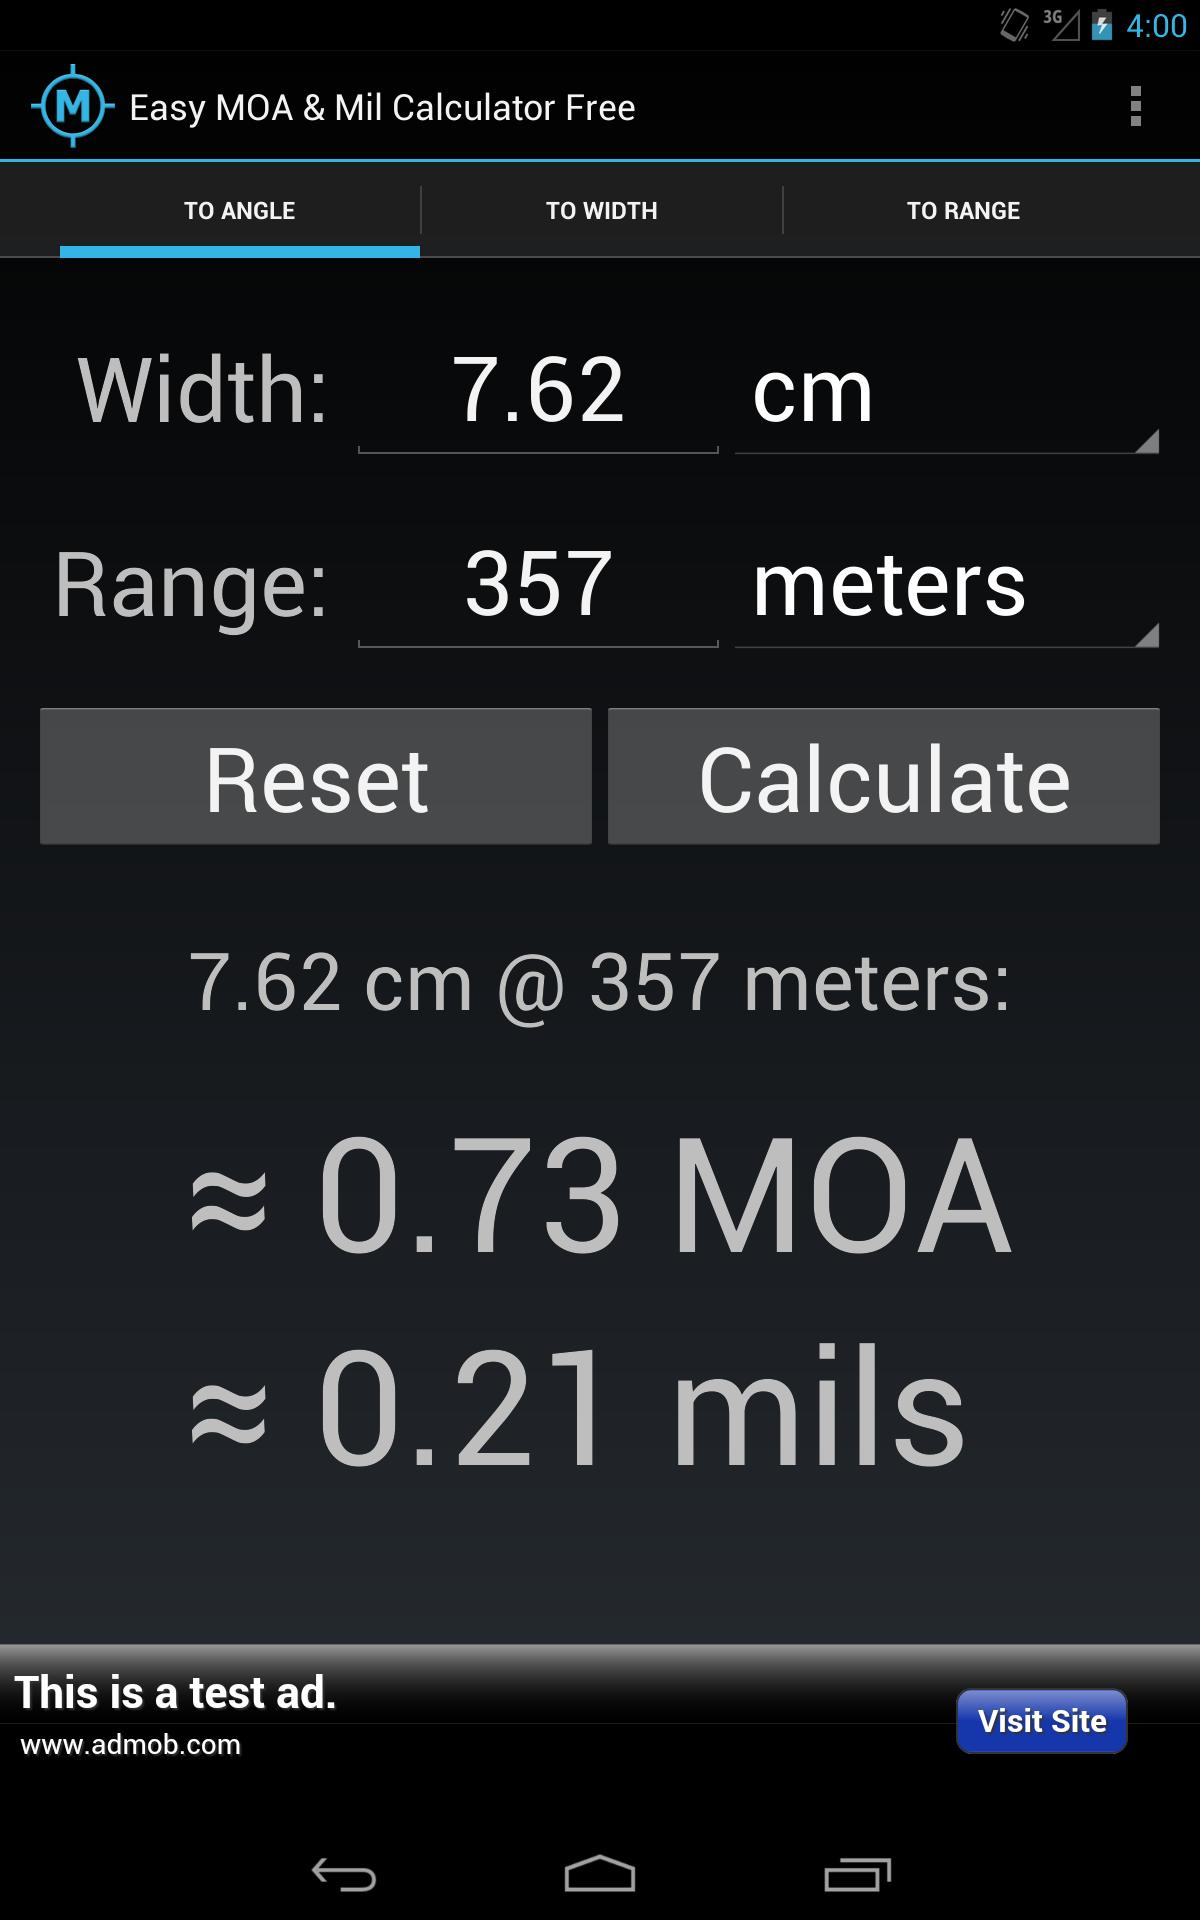 Easy MOA & Mil Calculator Free for Android - APK Download